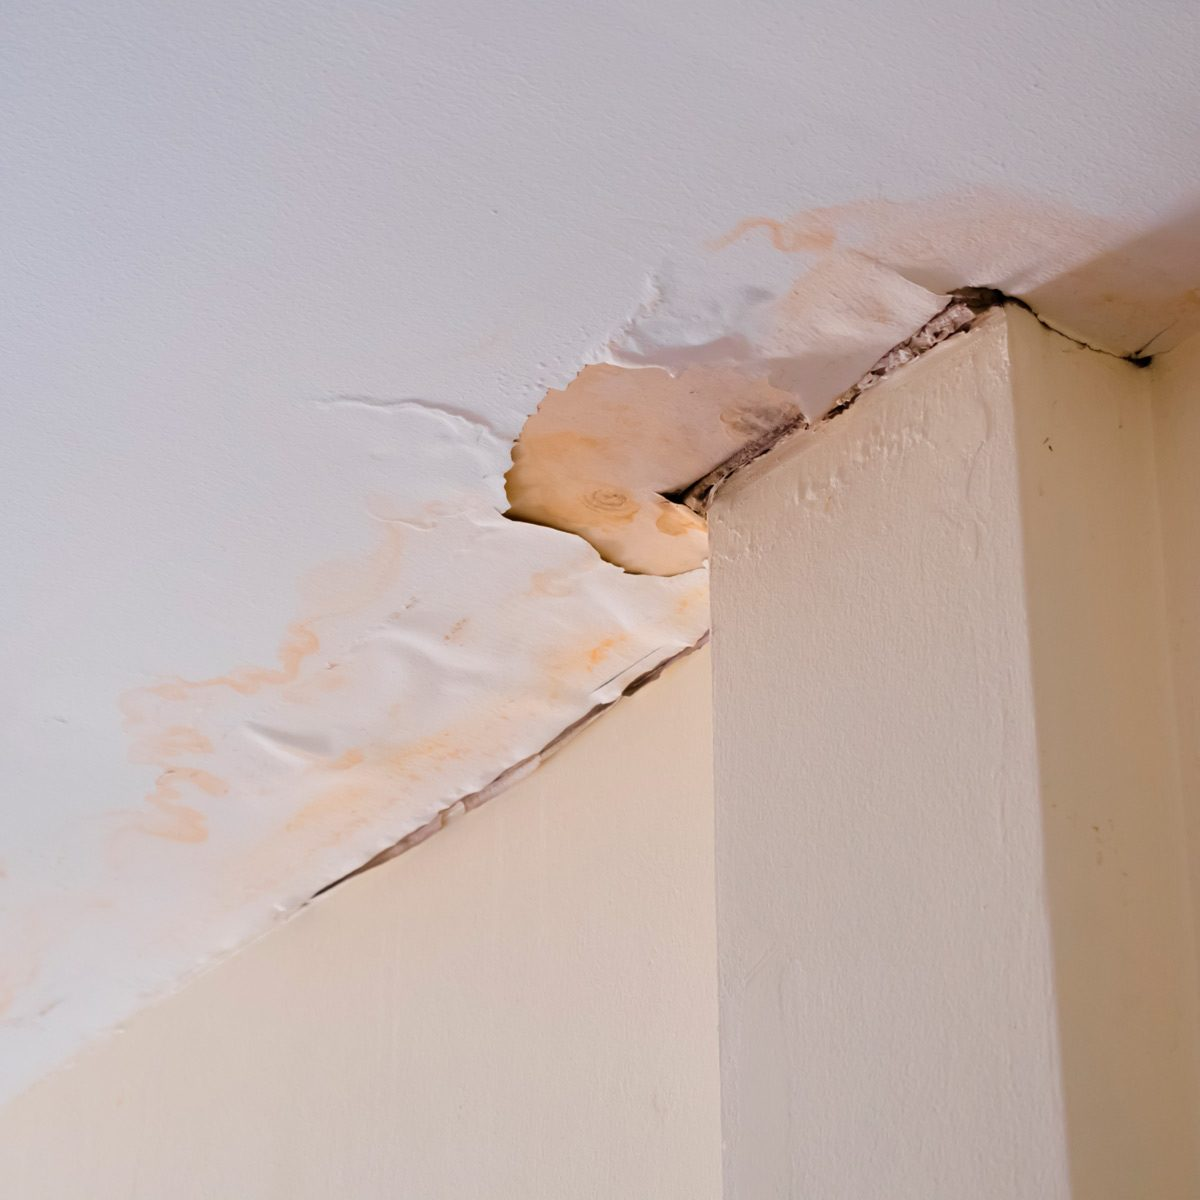 What to Do When Your Ceiling Has Water Damage